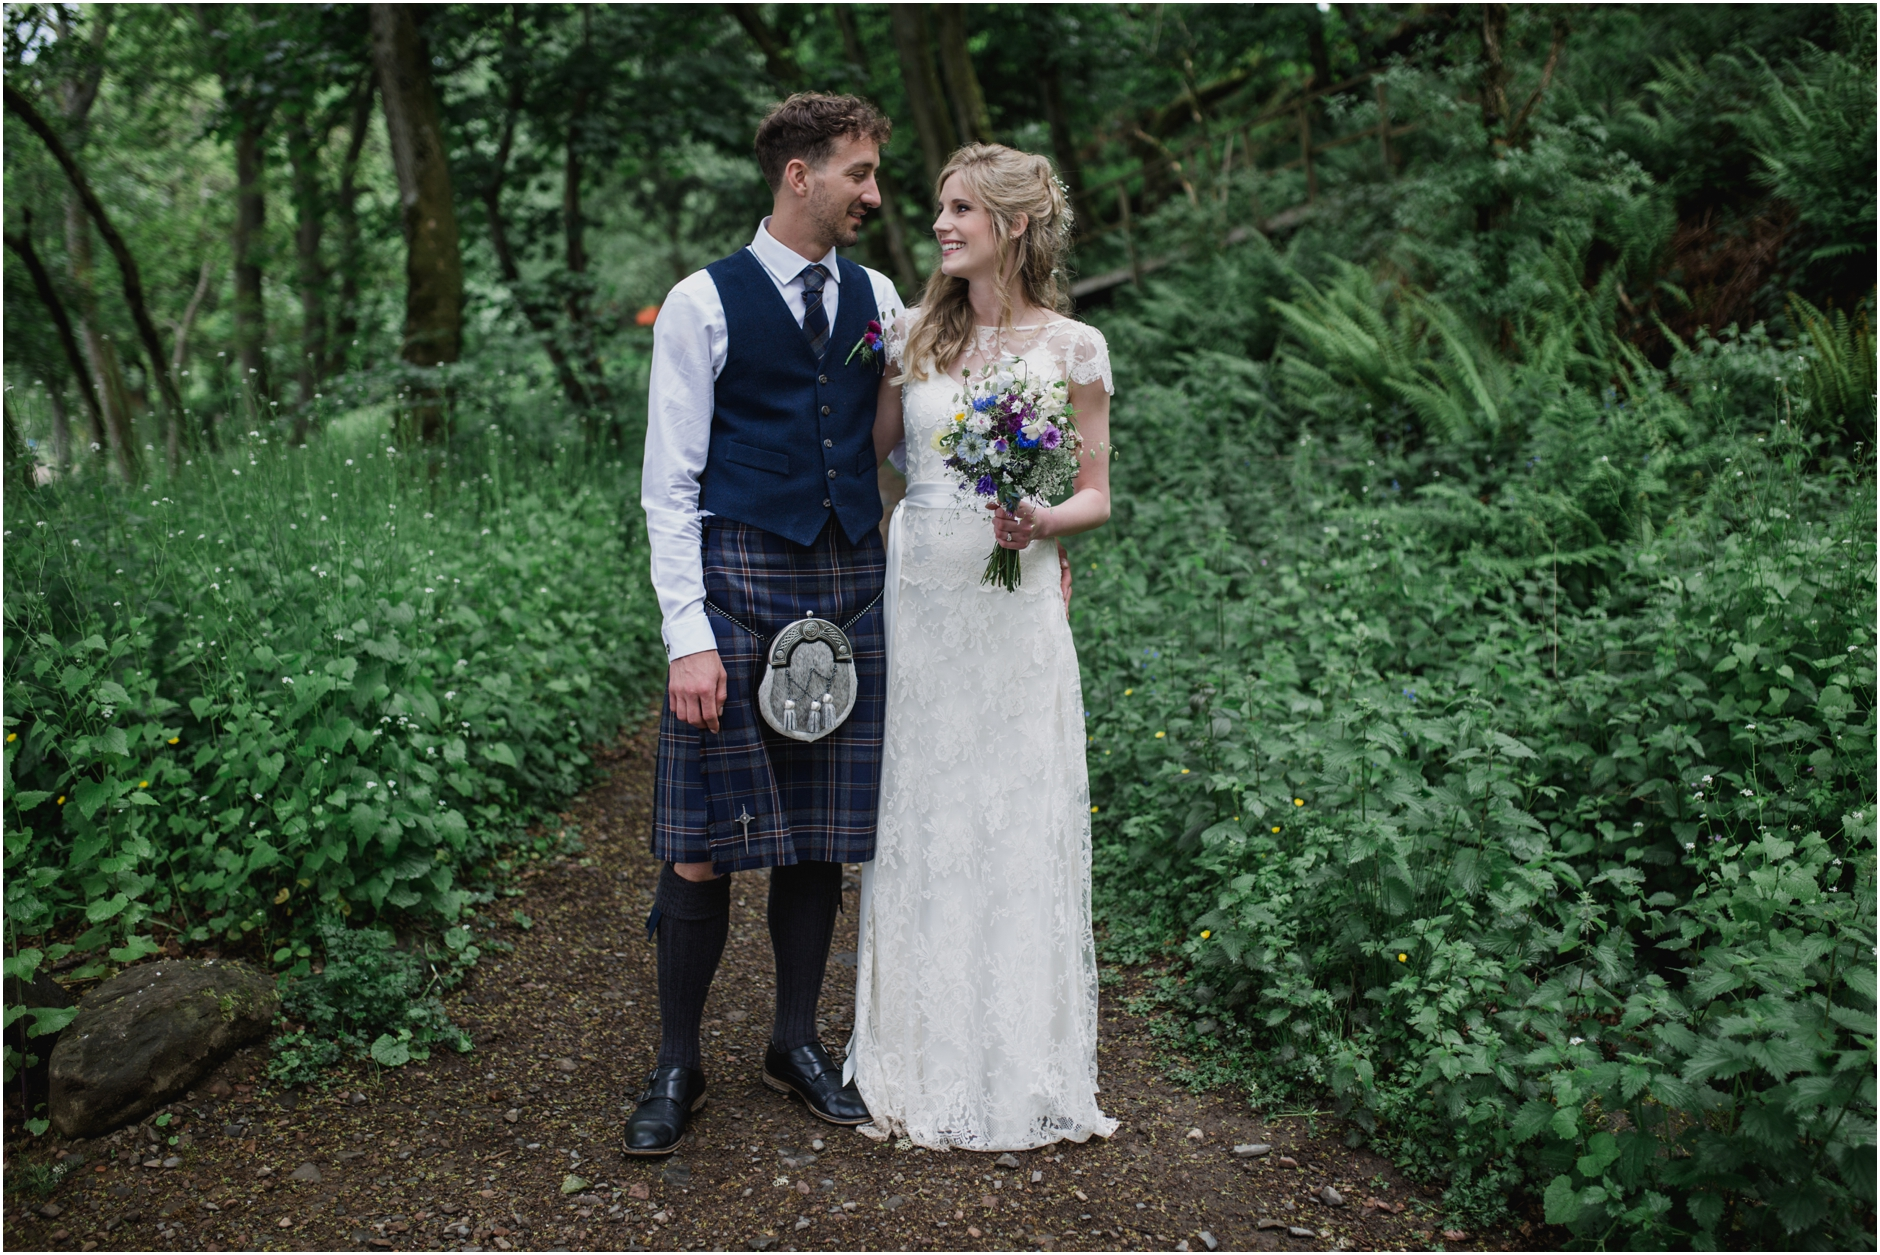 Beautiful bride Fiona wore a lace wedding dress by Halfpenny London